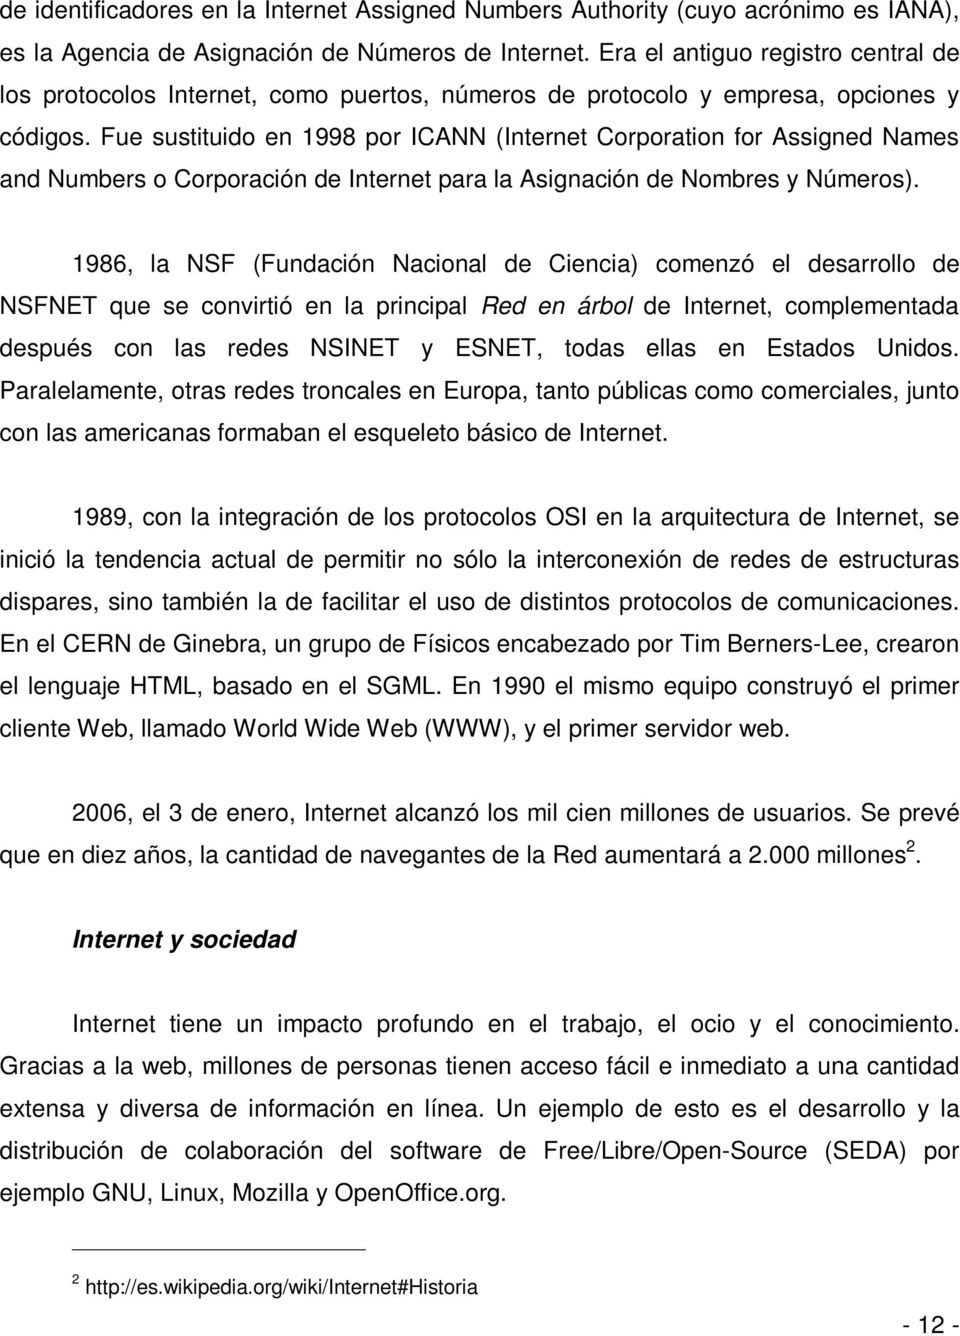 Fue sustituido en 1998 por ICANN (Internet Corporation for Assigned Names and Numbers o Corporación de Internet para la Asignación de Nombres y Números).